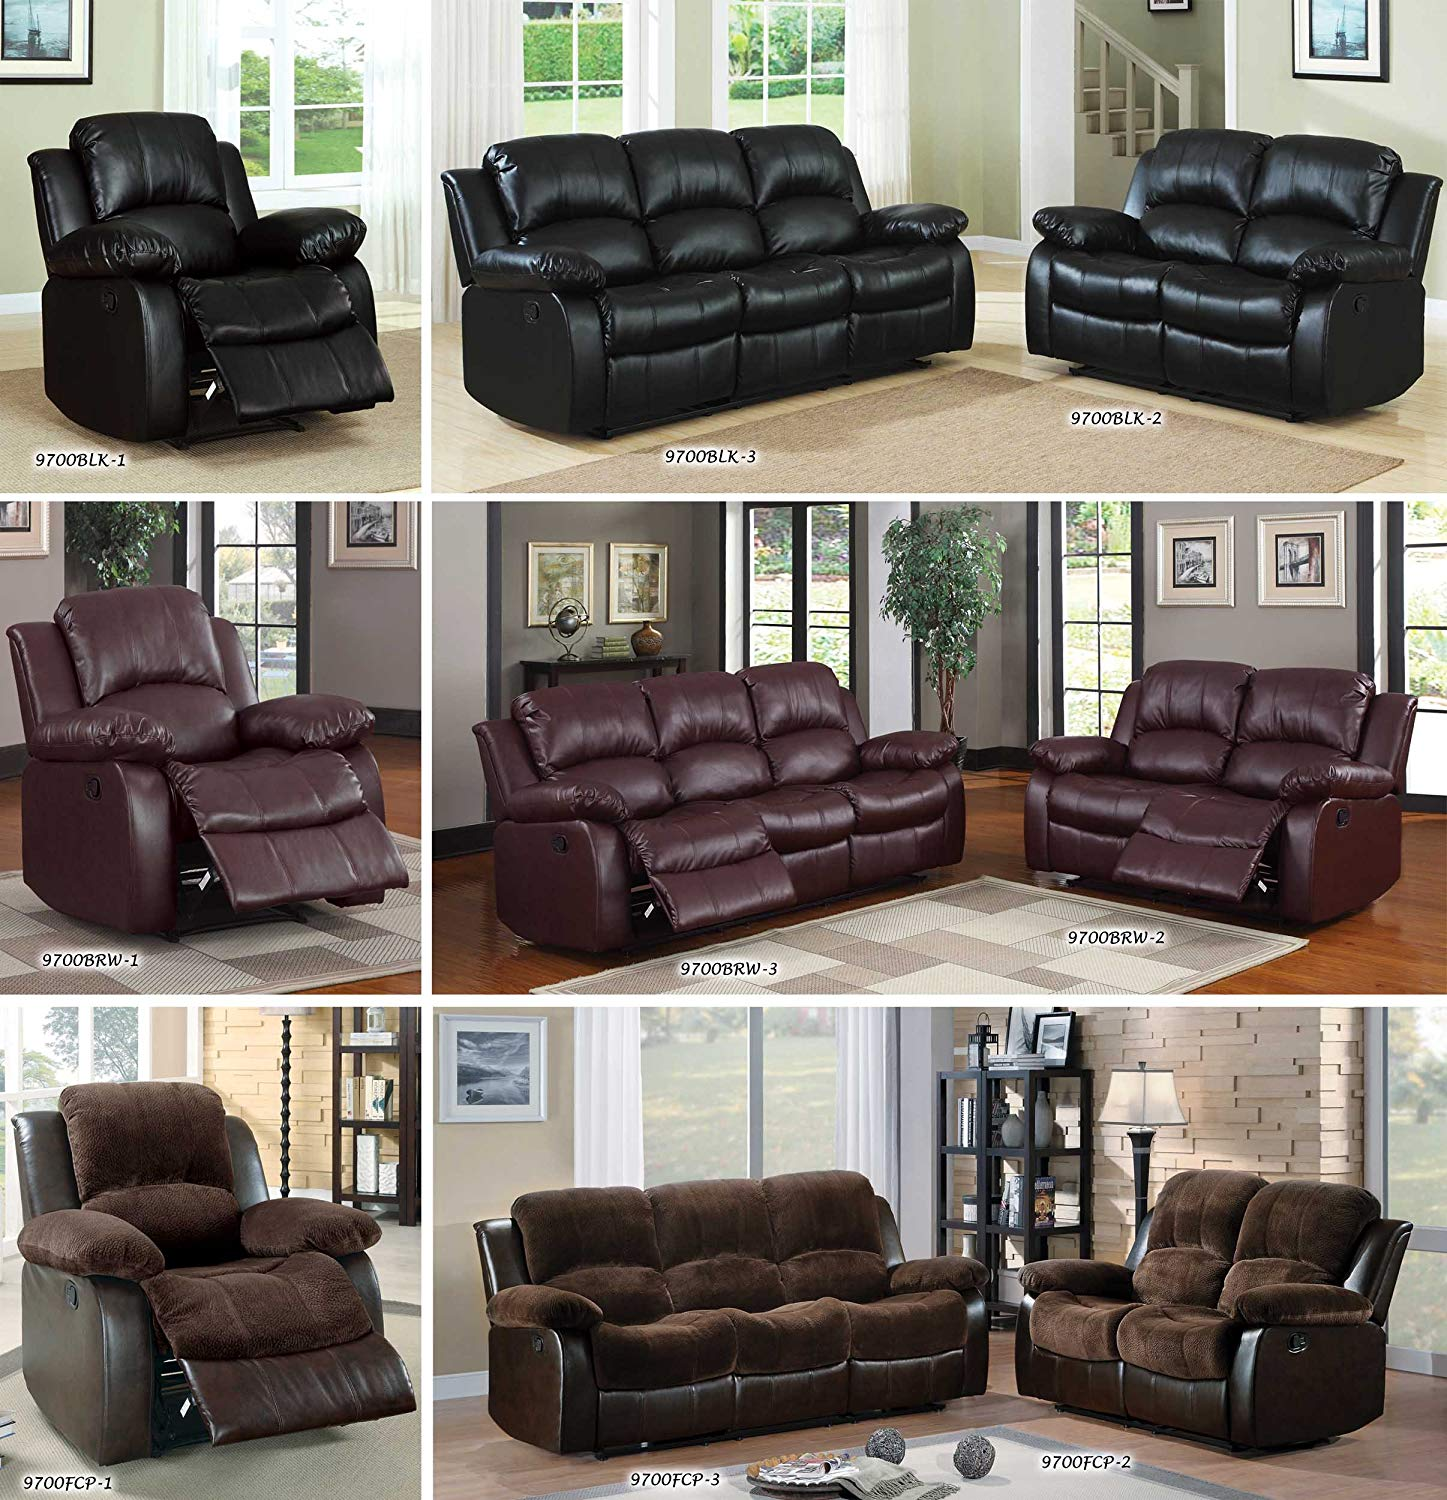 Best Prices On Sofas: Best Prices Homelegance Leather Reclining Sofa Review